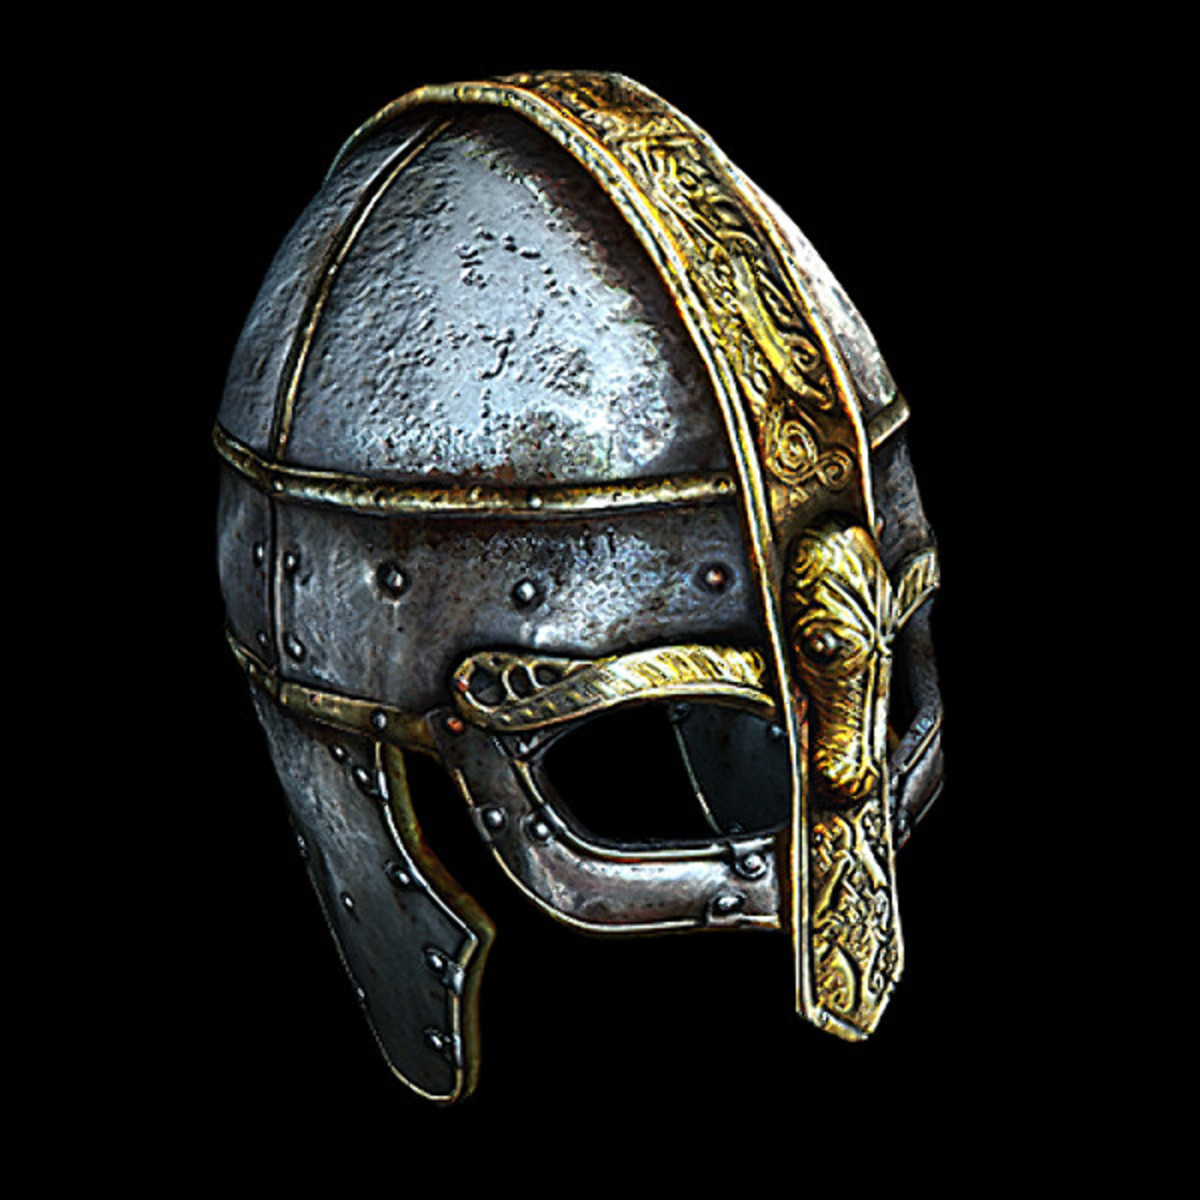 A helm worthy of a king with ornate visor and noseguard, hinged ear-pieces